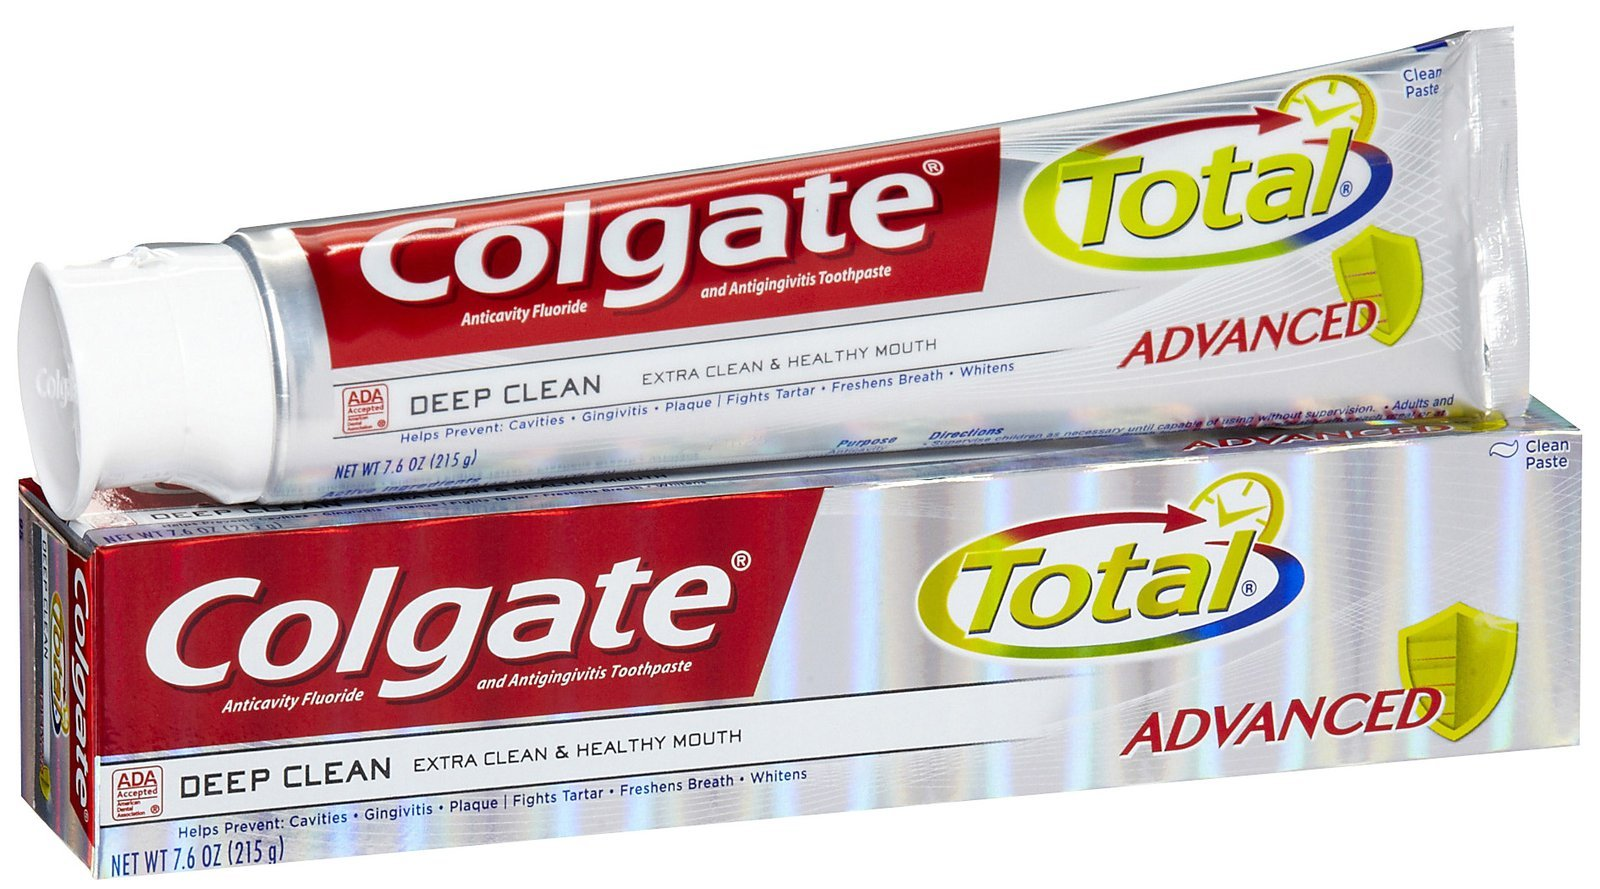 Exclusive savings on Colgate toothpaste. Find printable Colgate coupons for with daily updates including new offers and giveaways.